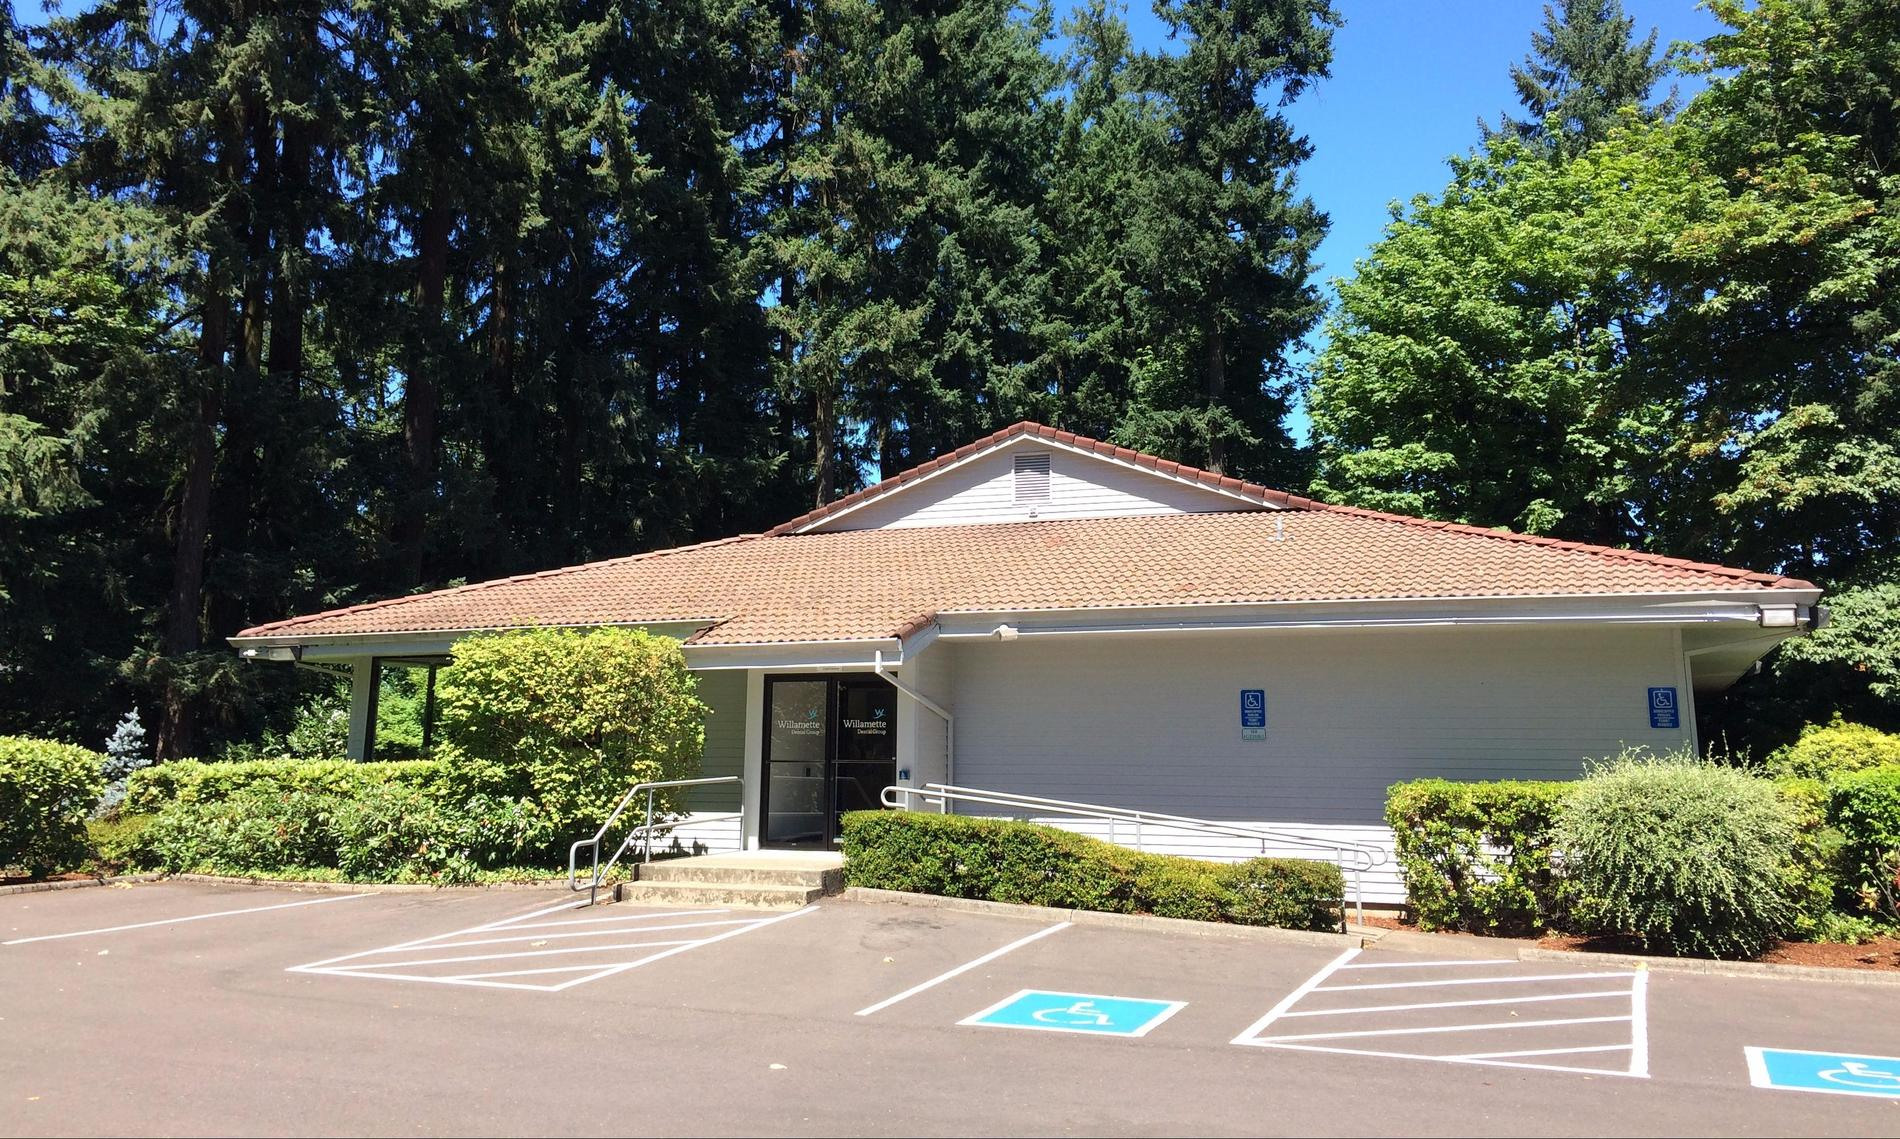 Tualatin Dentists Willamette Dental Group 17130 Sw Upper Boones